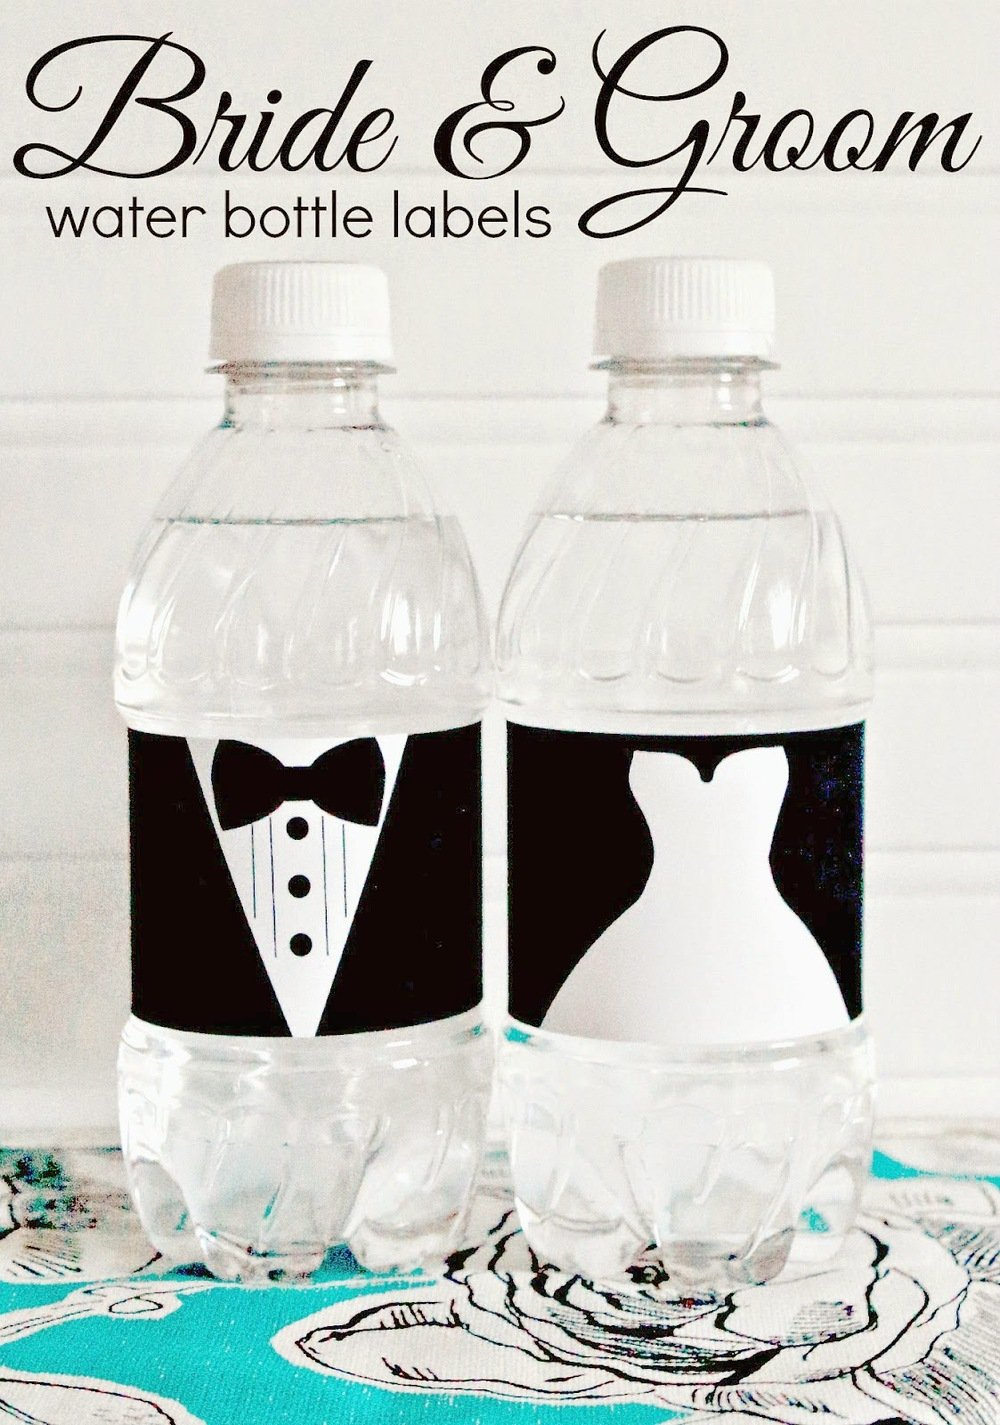 Speaking of water bottle labels - how precious are these  bride and groom labels from Prepping Parties ? What a fun way to personalize your wedding!